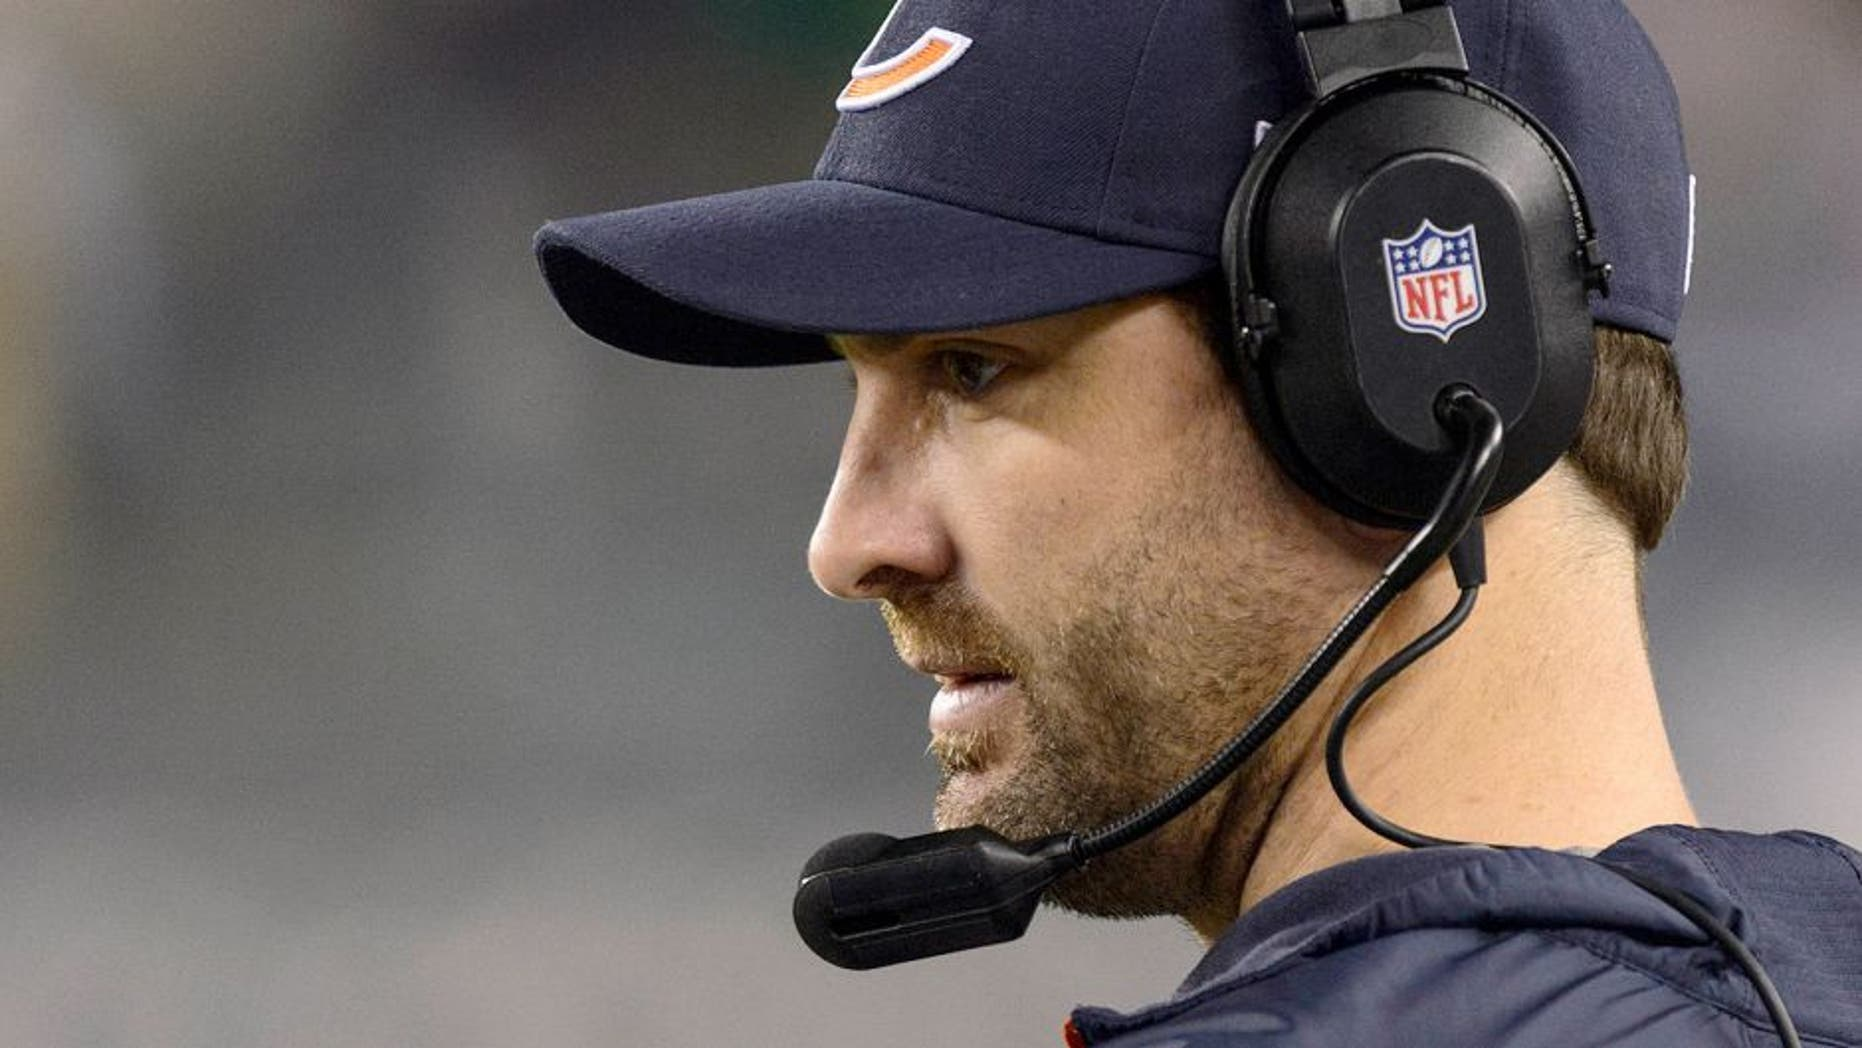 Dec 22, 2013; Philadelphia, PA, USA; Chicago Bears wide receivers coach Mike Groh along the sidelines during the second quarter against the Philadelphia Eagles at Lincoln Financial Field. The Eagles defeated the Bears 54-11. Mandatory Credit: Howard Smith-USA TODAY Sports